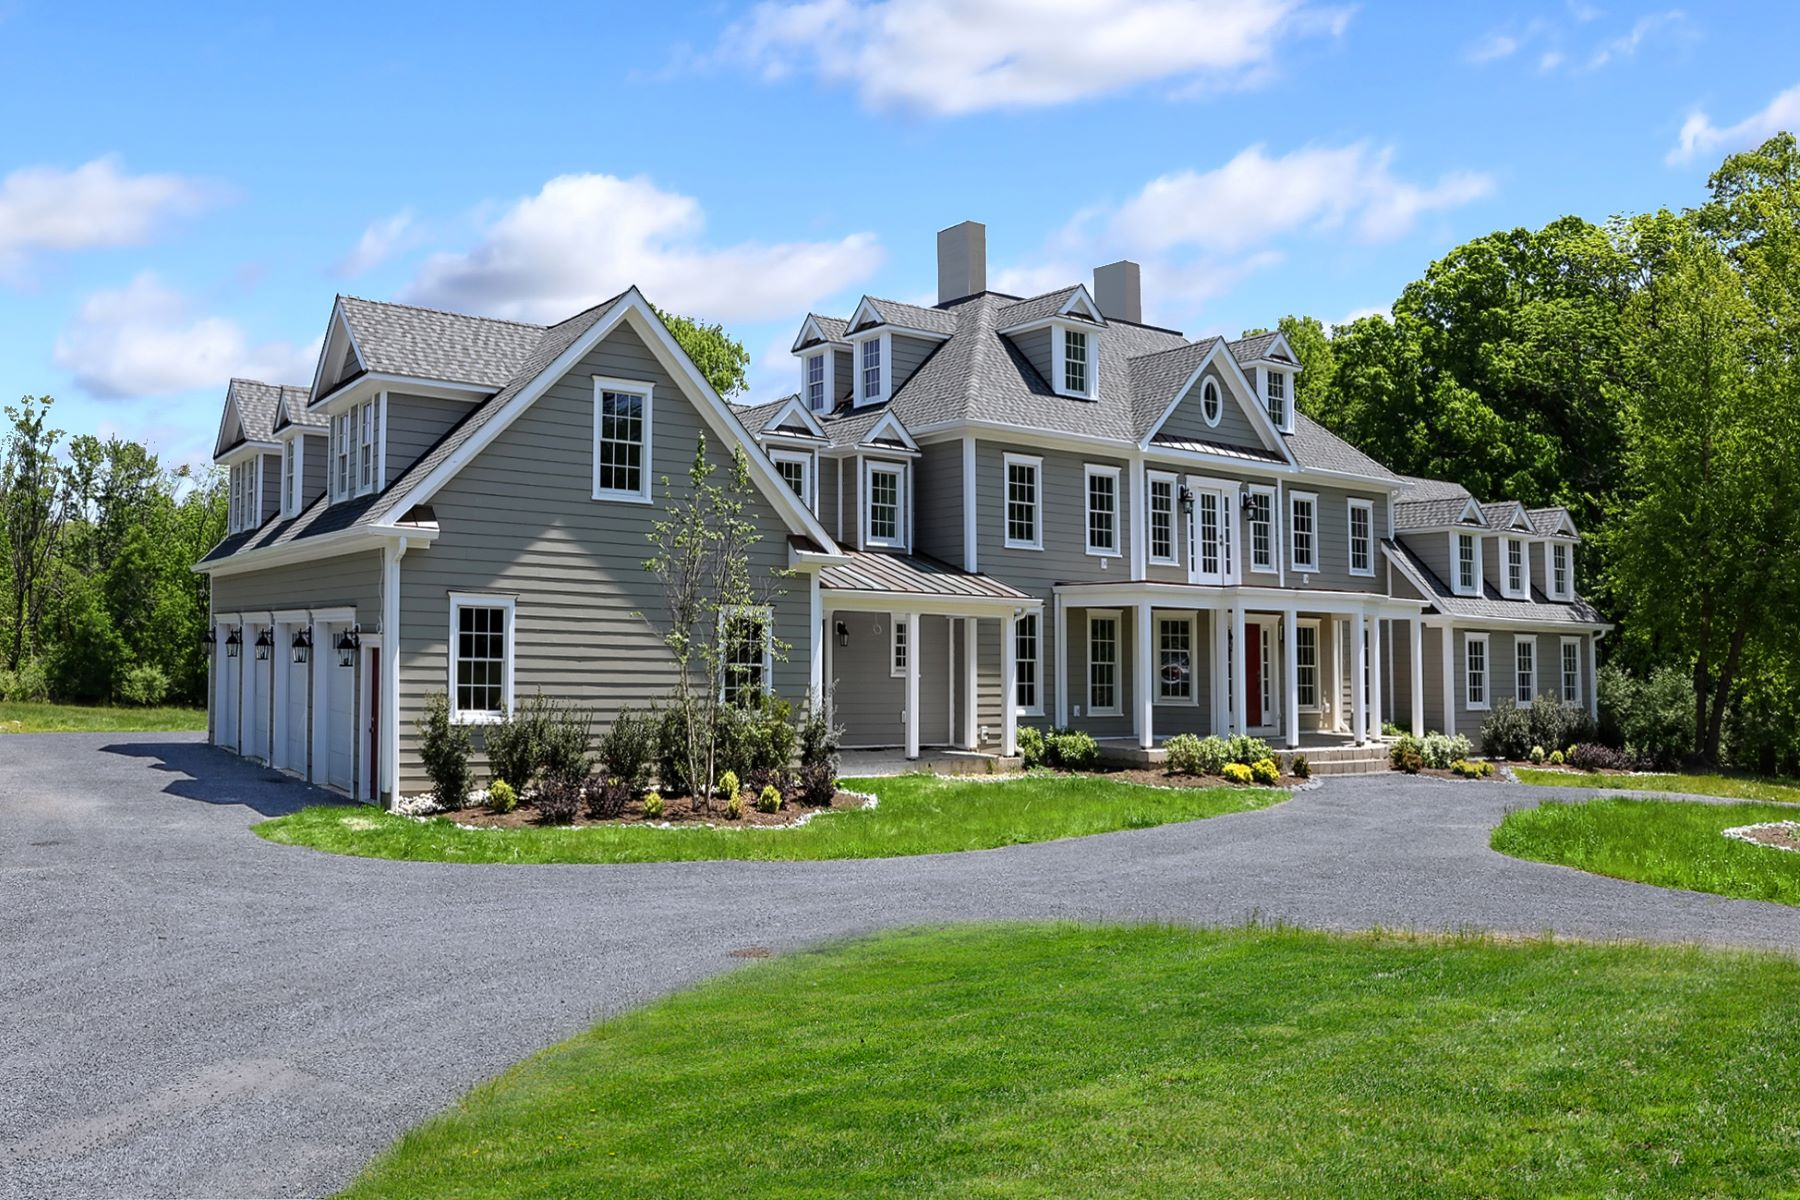 Single Family Homes für Verkauf beim Every Amenity in this Spectacular Estate-Style Home 114 Federal Twist Road, Stockton, New Jersey 08559 Vereinigte Staaten